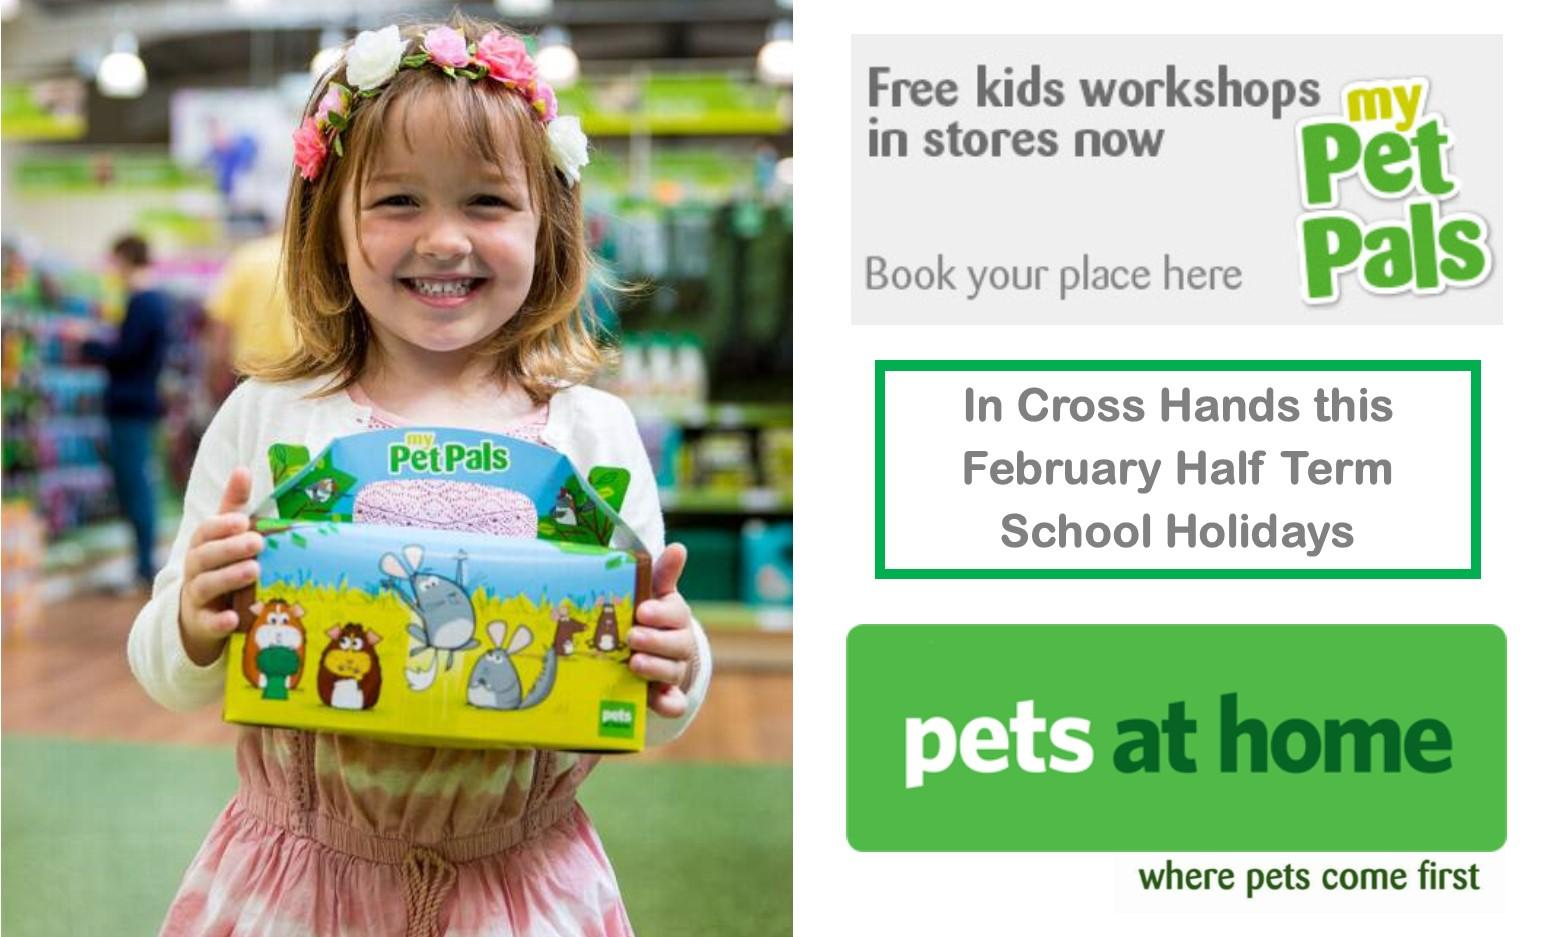 Super Small Furries Pets at Home Workshop in Cross Hands